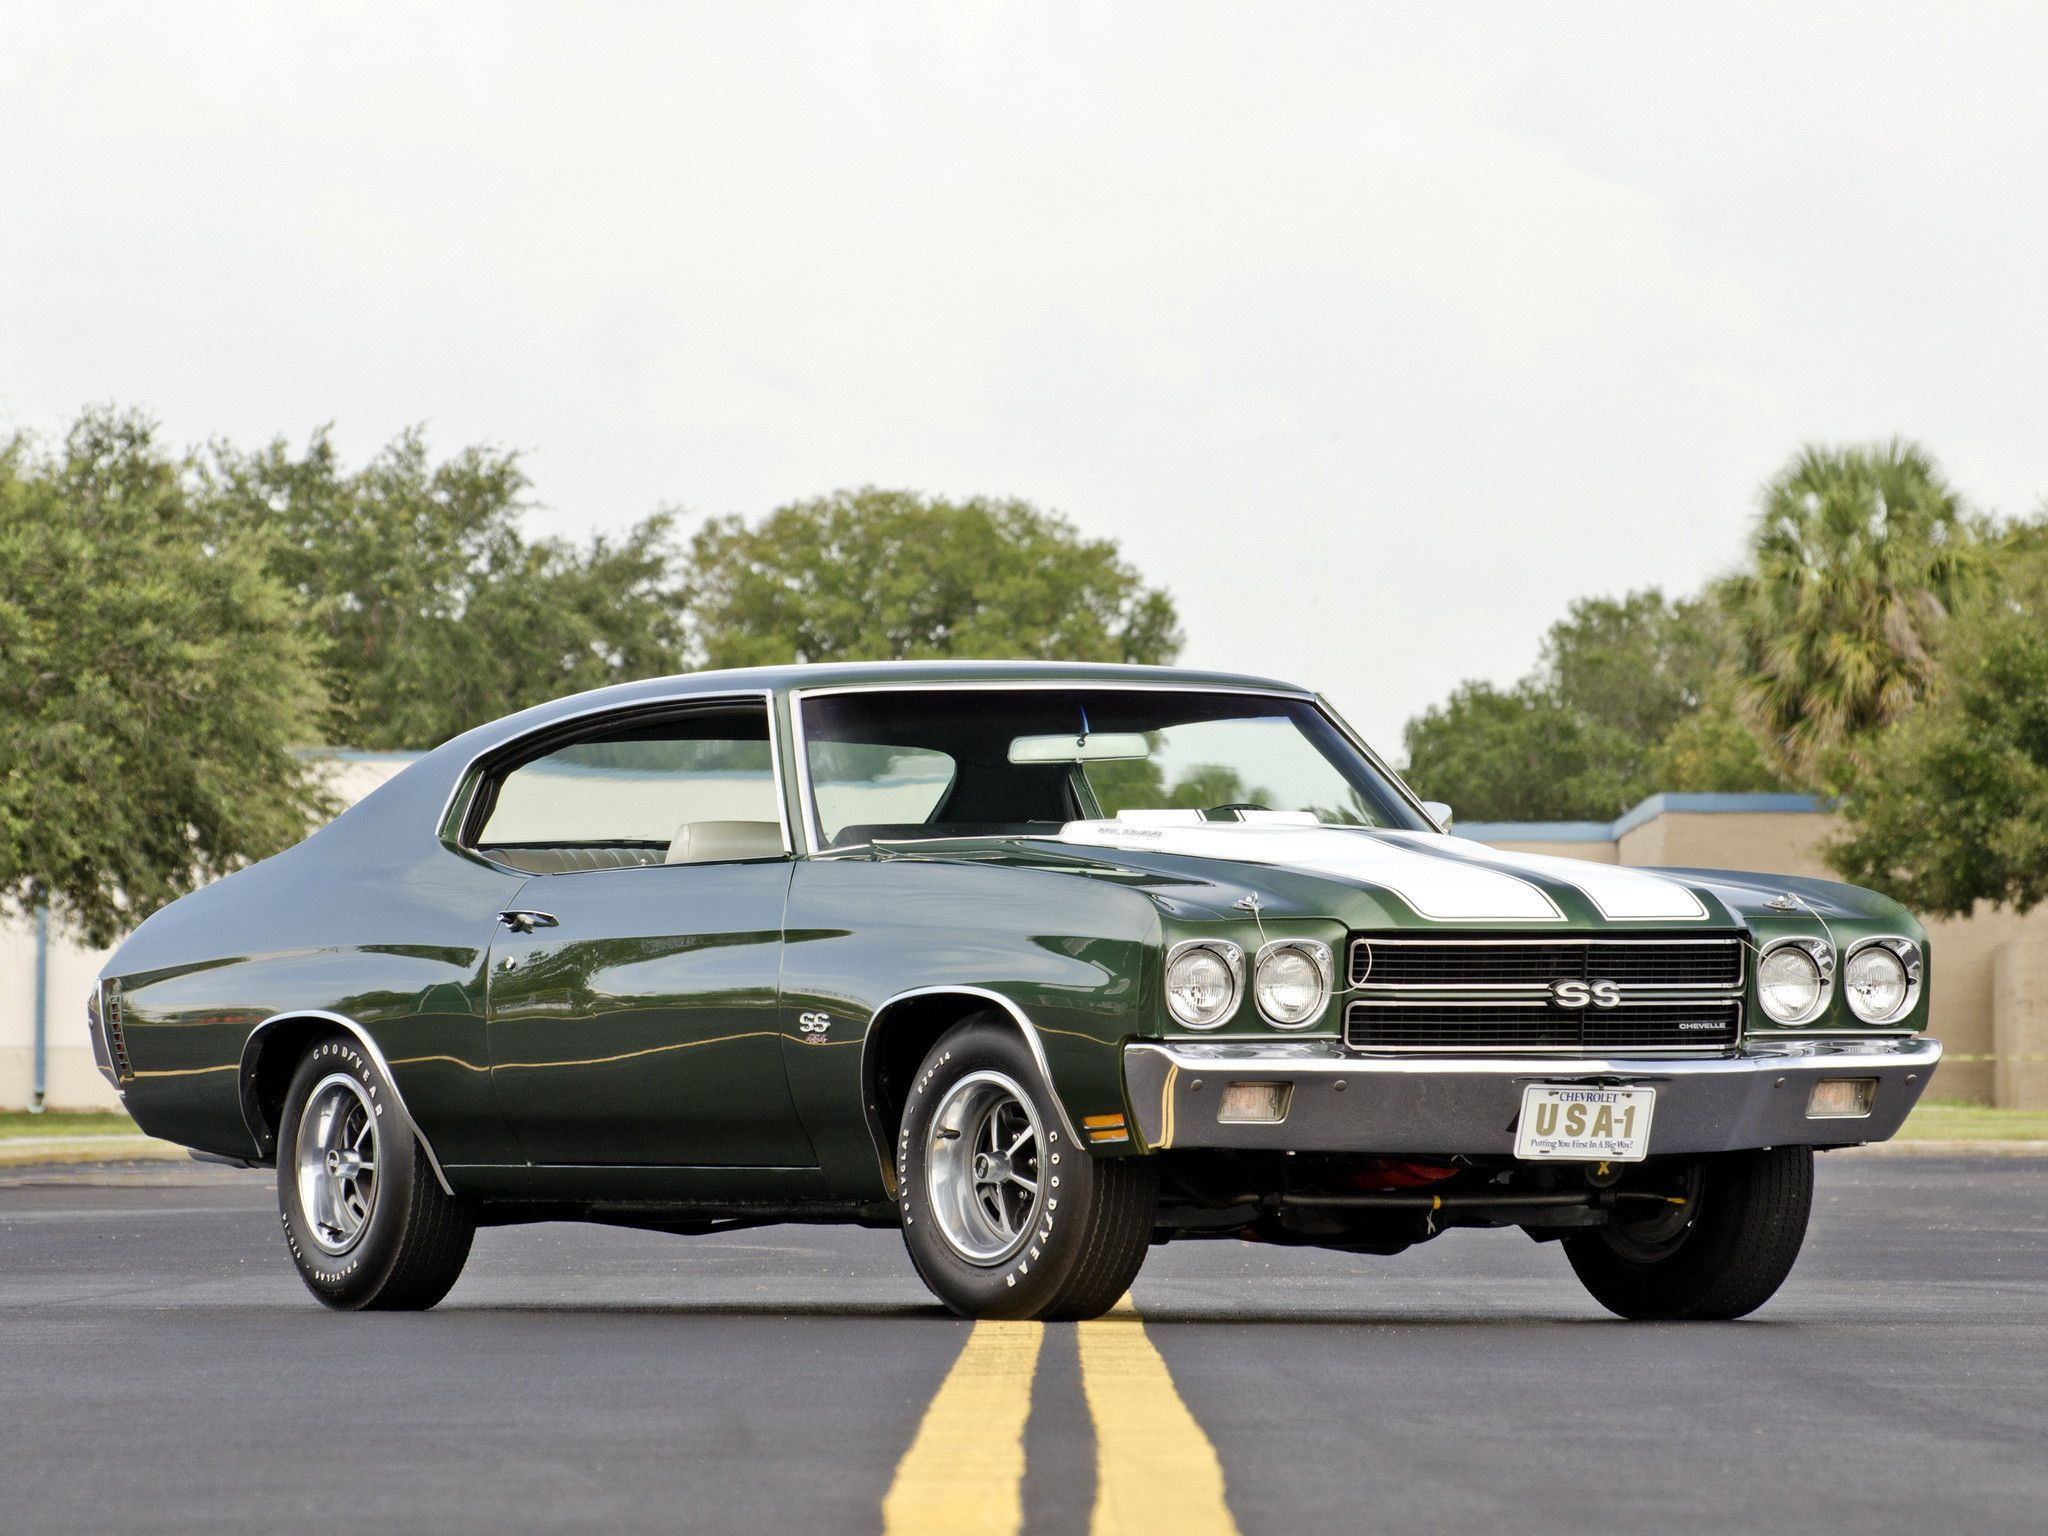 1970 chevrolet chevelle ss 454 hardtop coupe muscle classic s s c